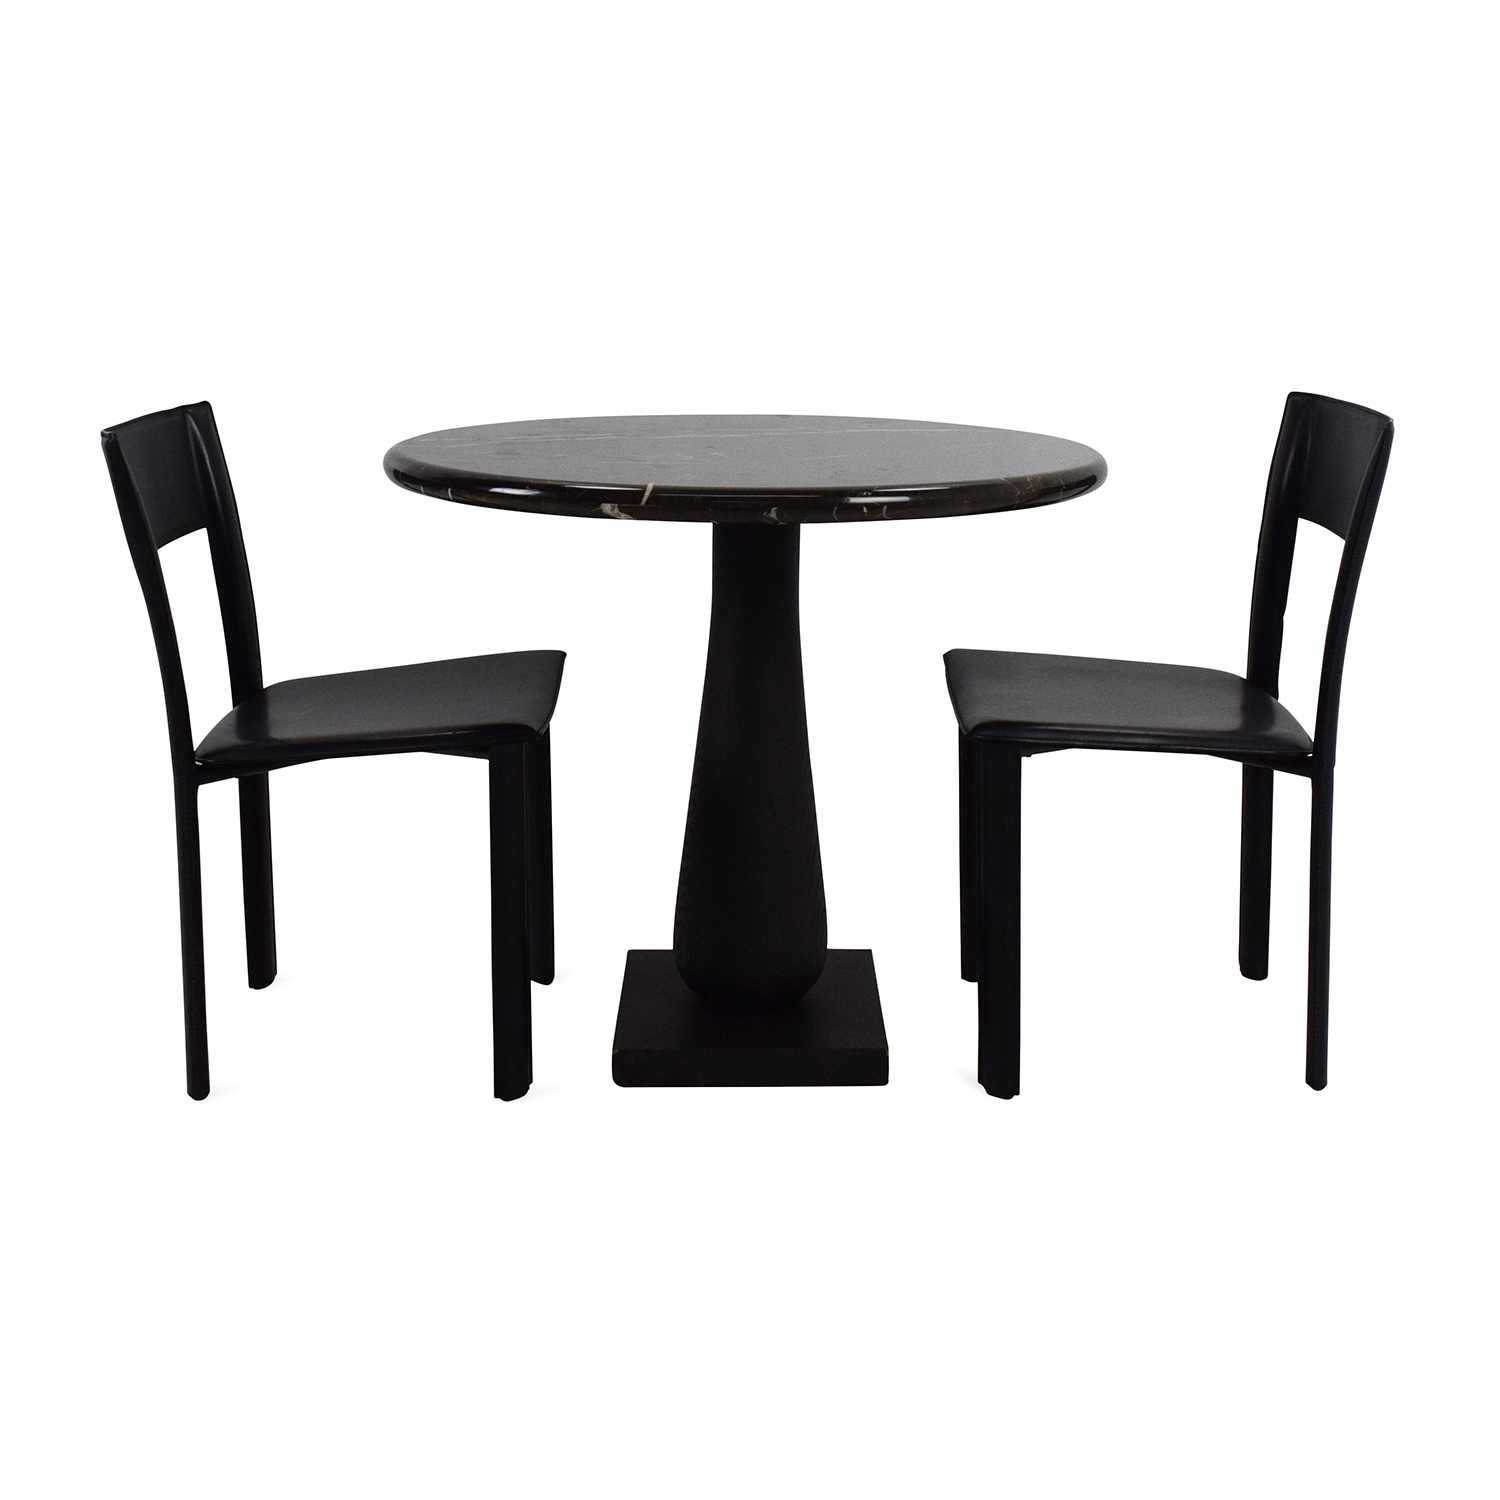 Marble Dinner Table and Chairs Black